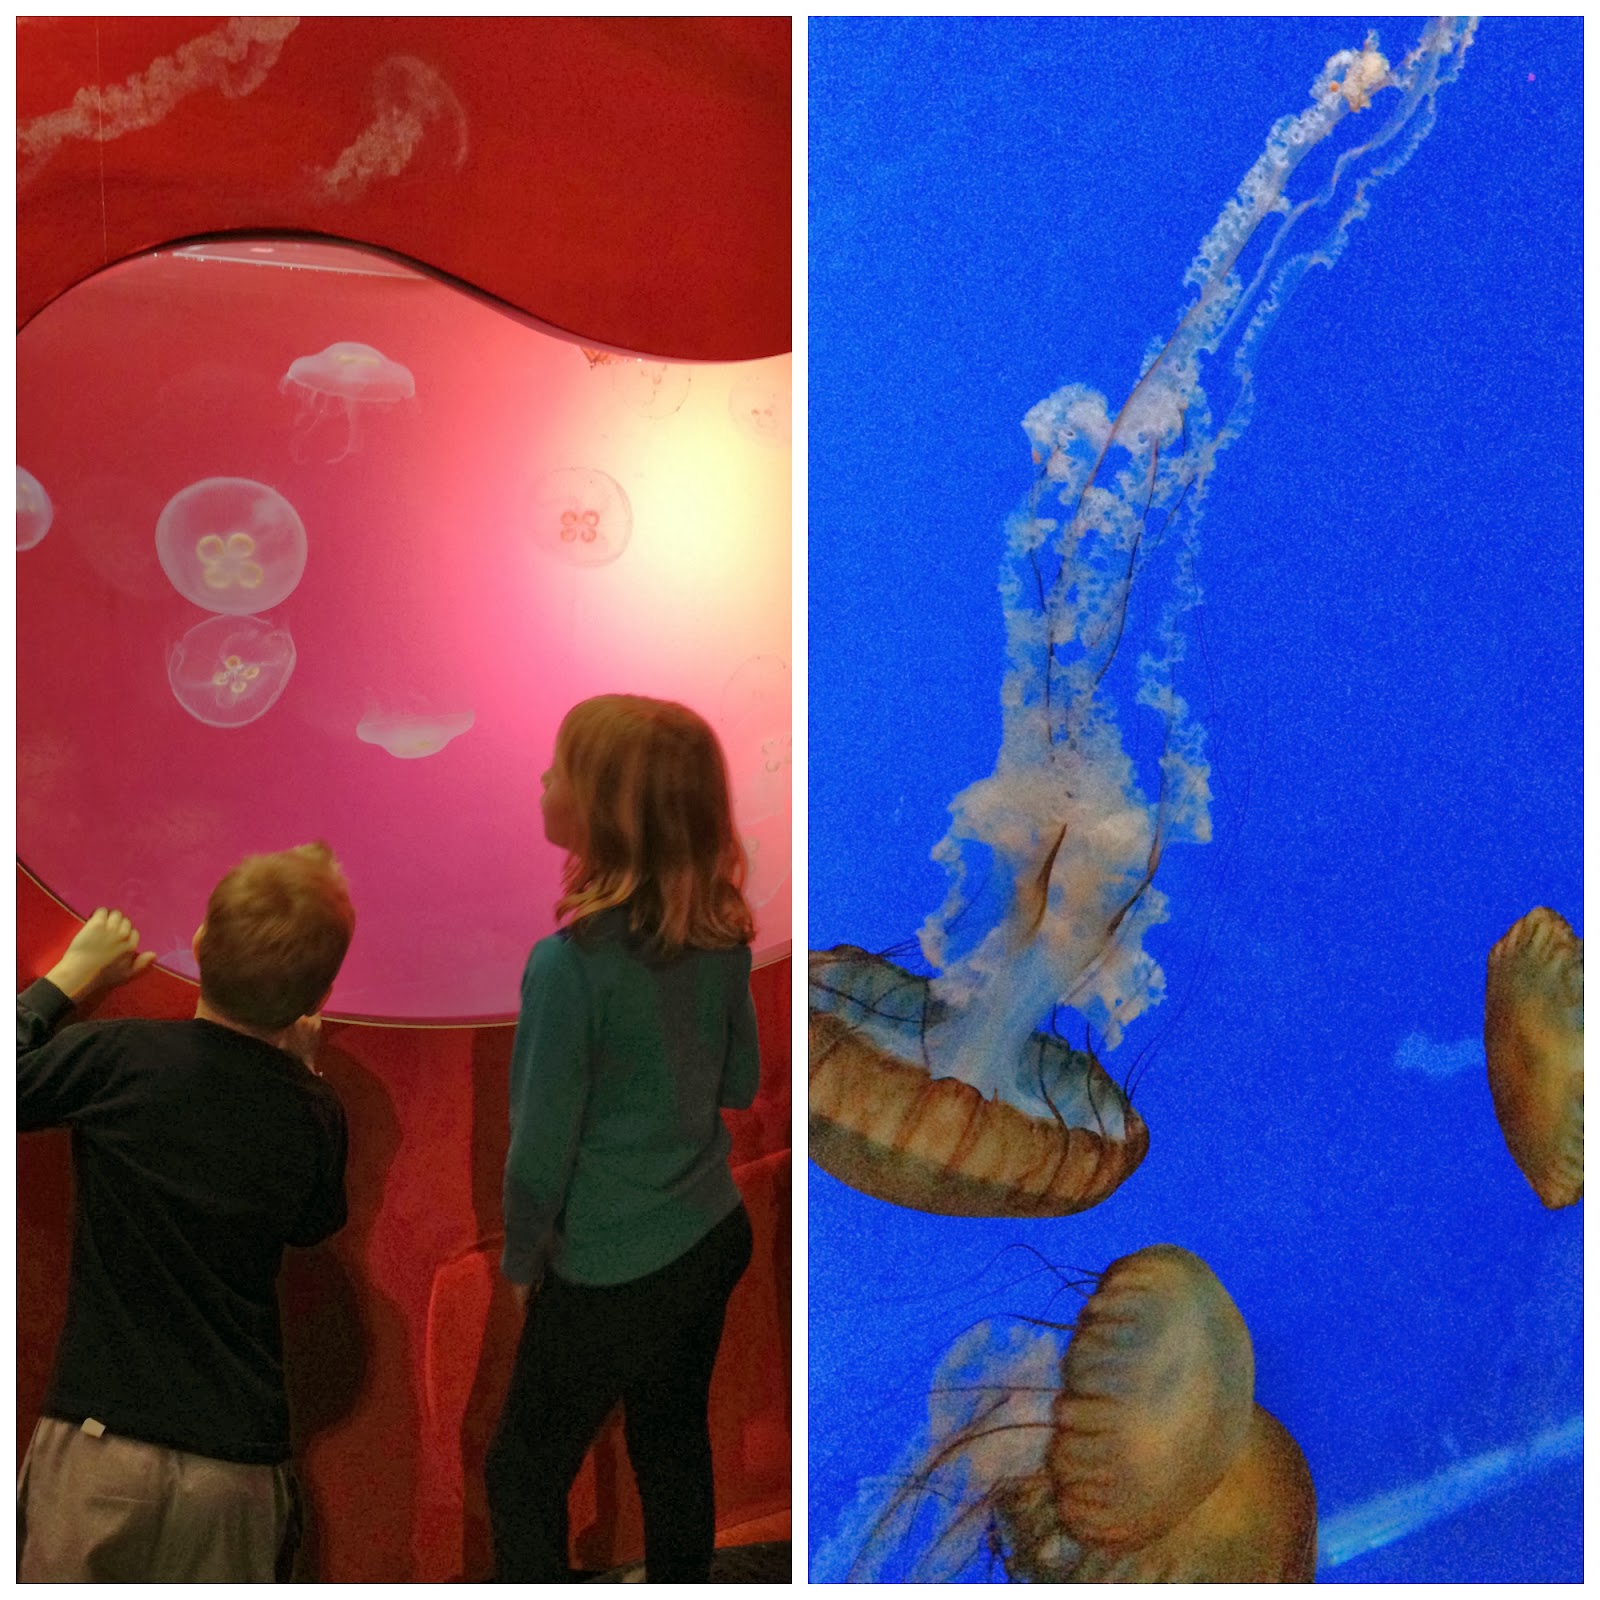 Jellies Exhibit at Shedd Aquarium in Chicago